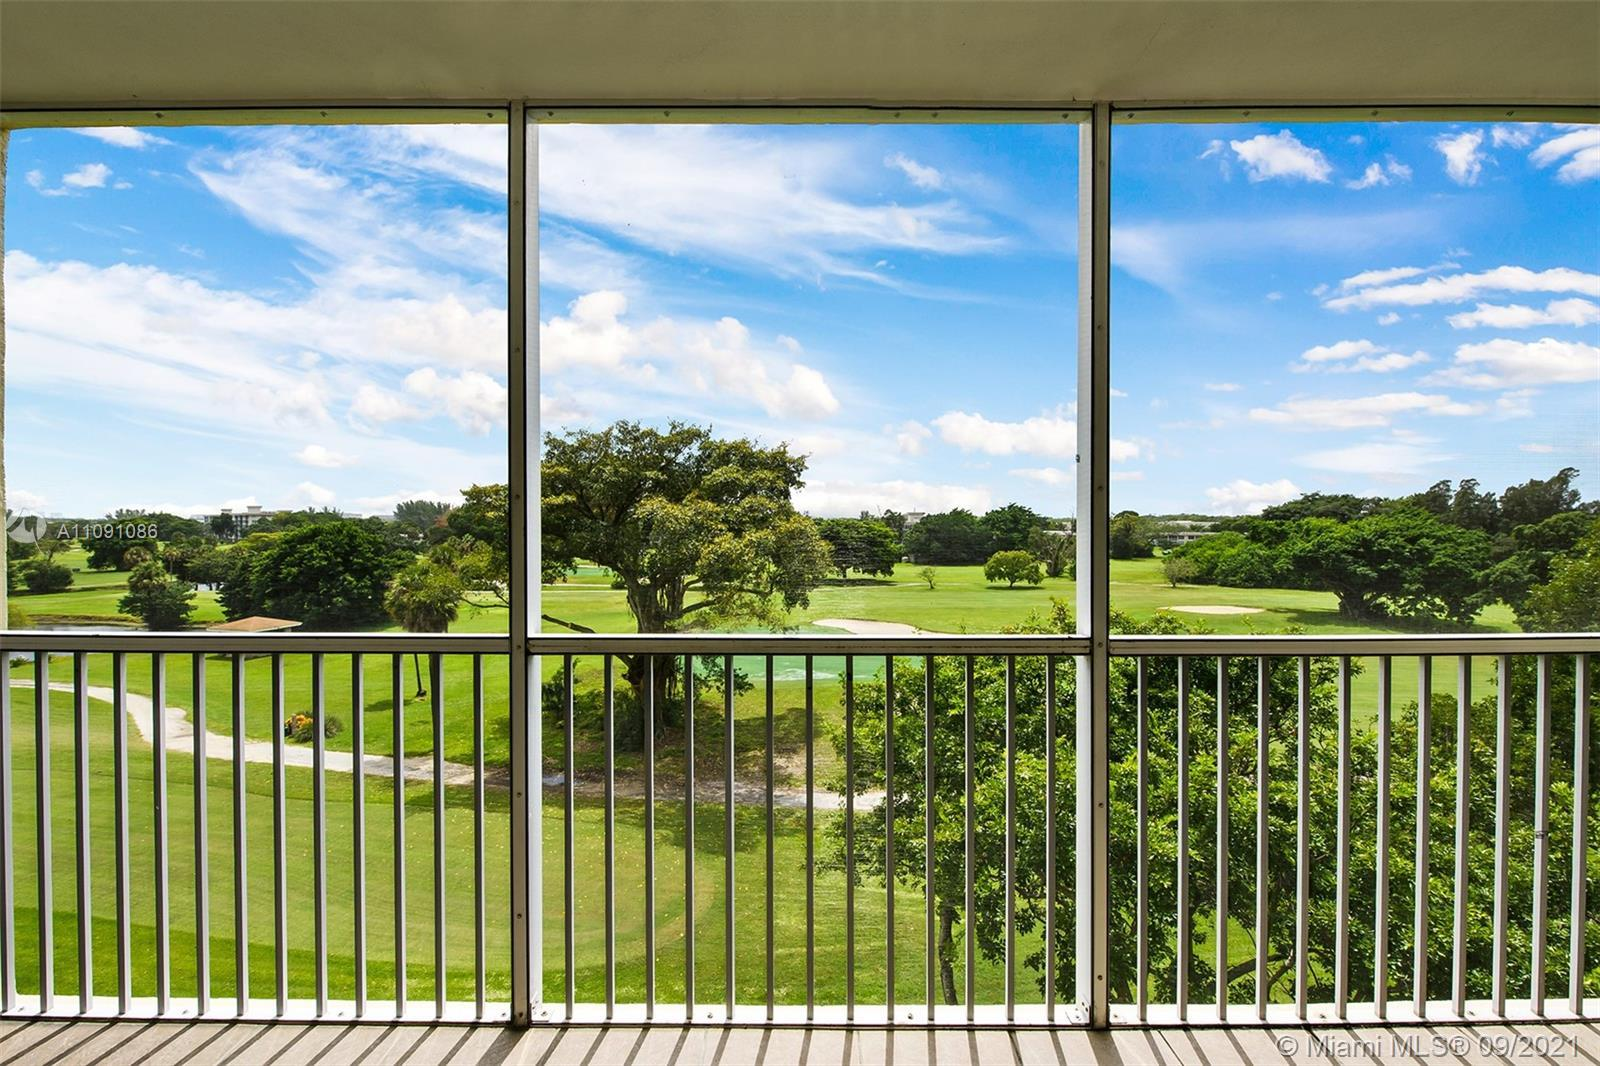 SPECTACULAR GOLF COURSE VIEWS FROM THIS BEAUTIFULLY UPGRADED SPACIOUS 3/2 CONDO! HUGE 3 BEDROOMS WIT